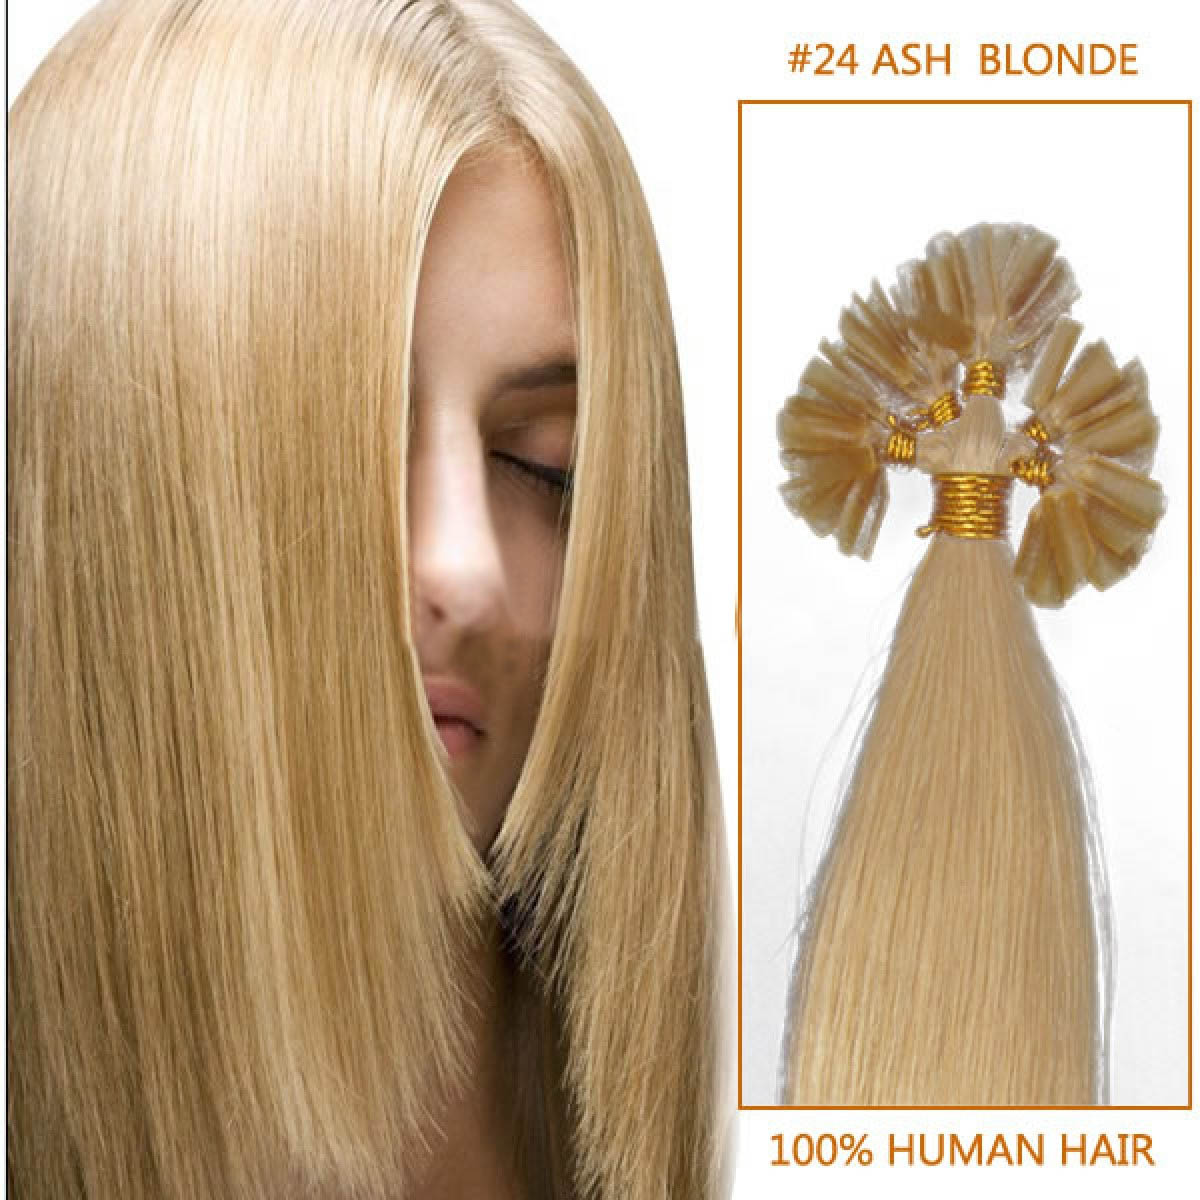 Hair Extensions With Blonde Tips Blonde Nail Tip Human Hair